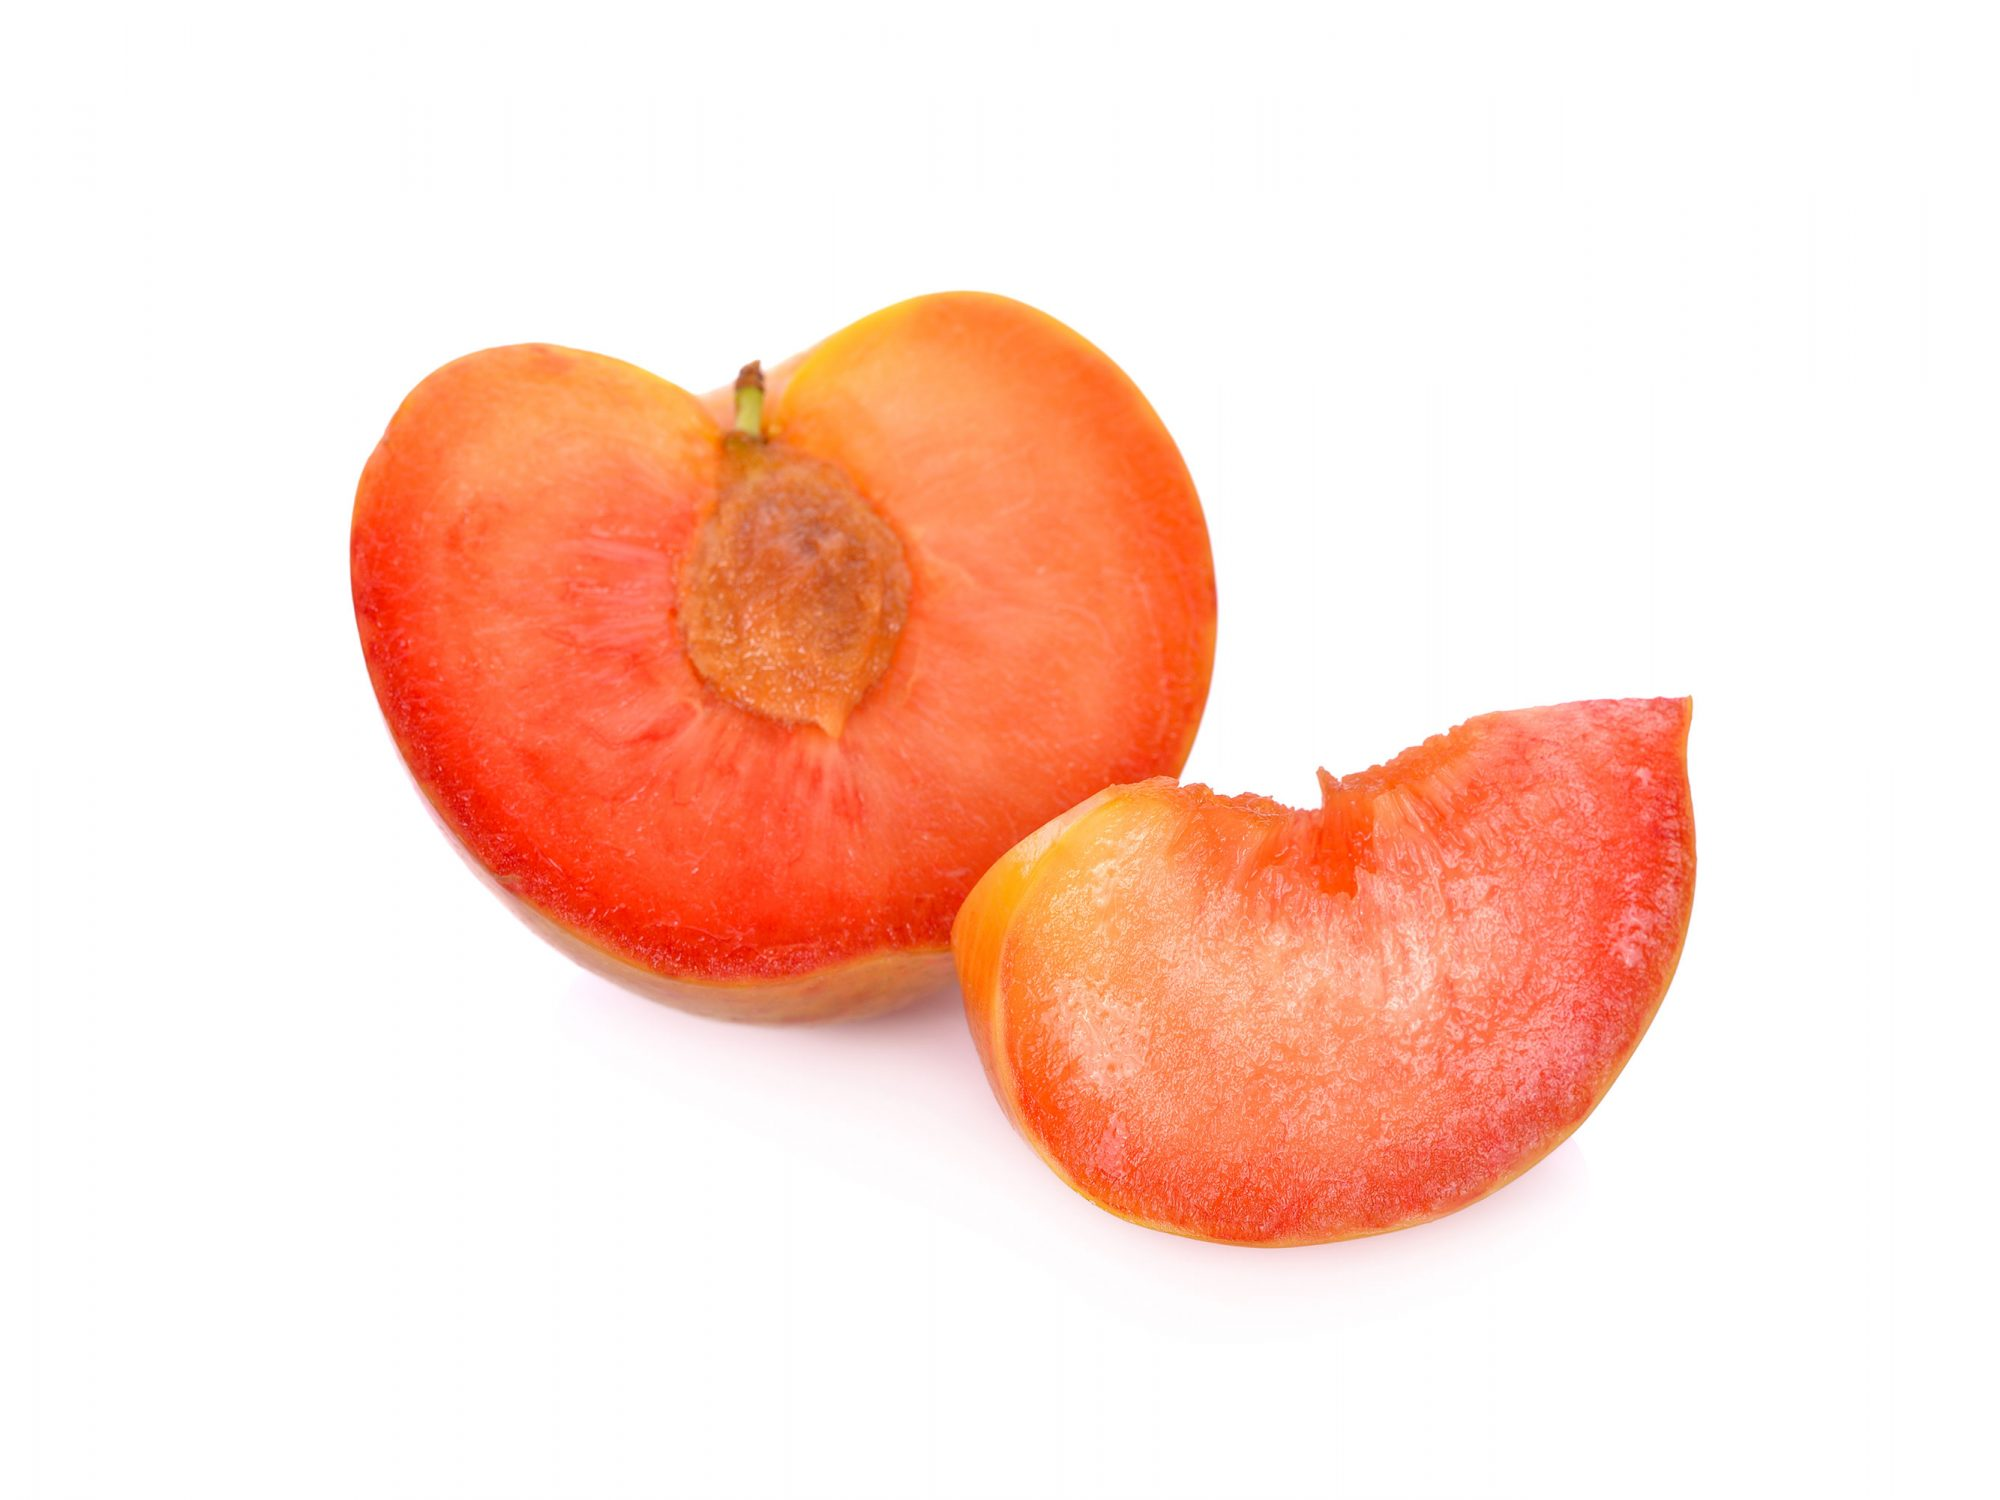 Pluots on white background